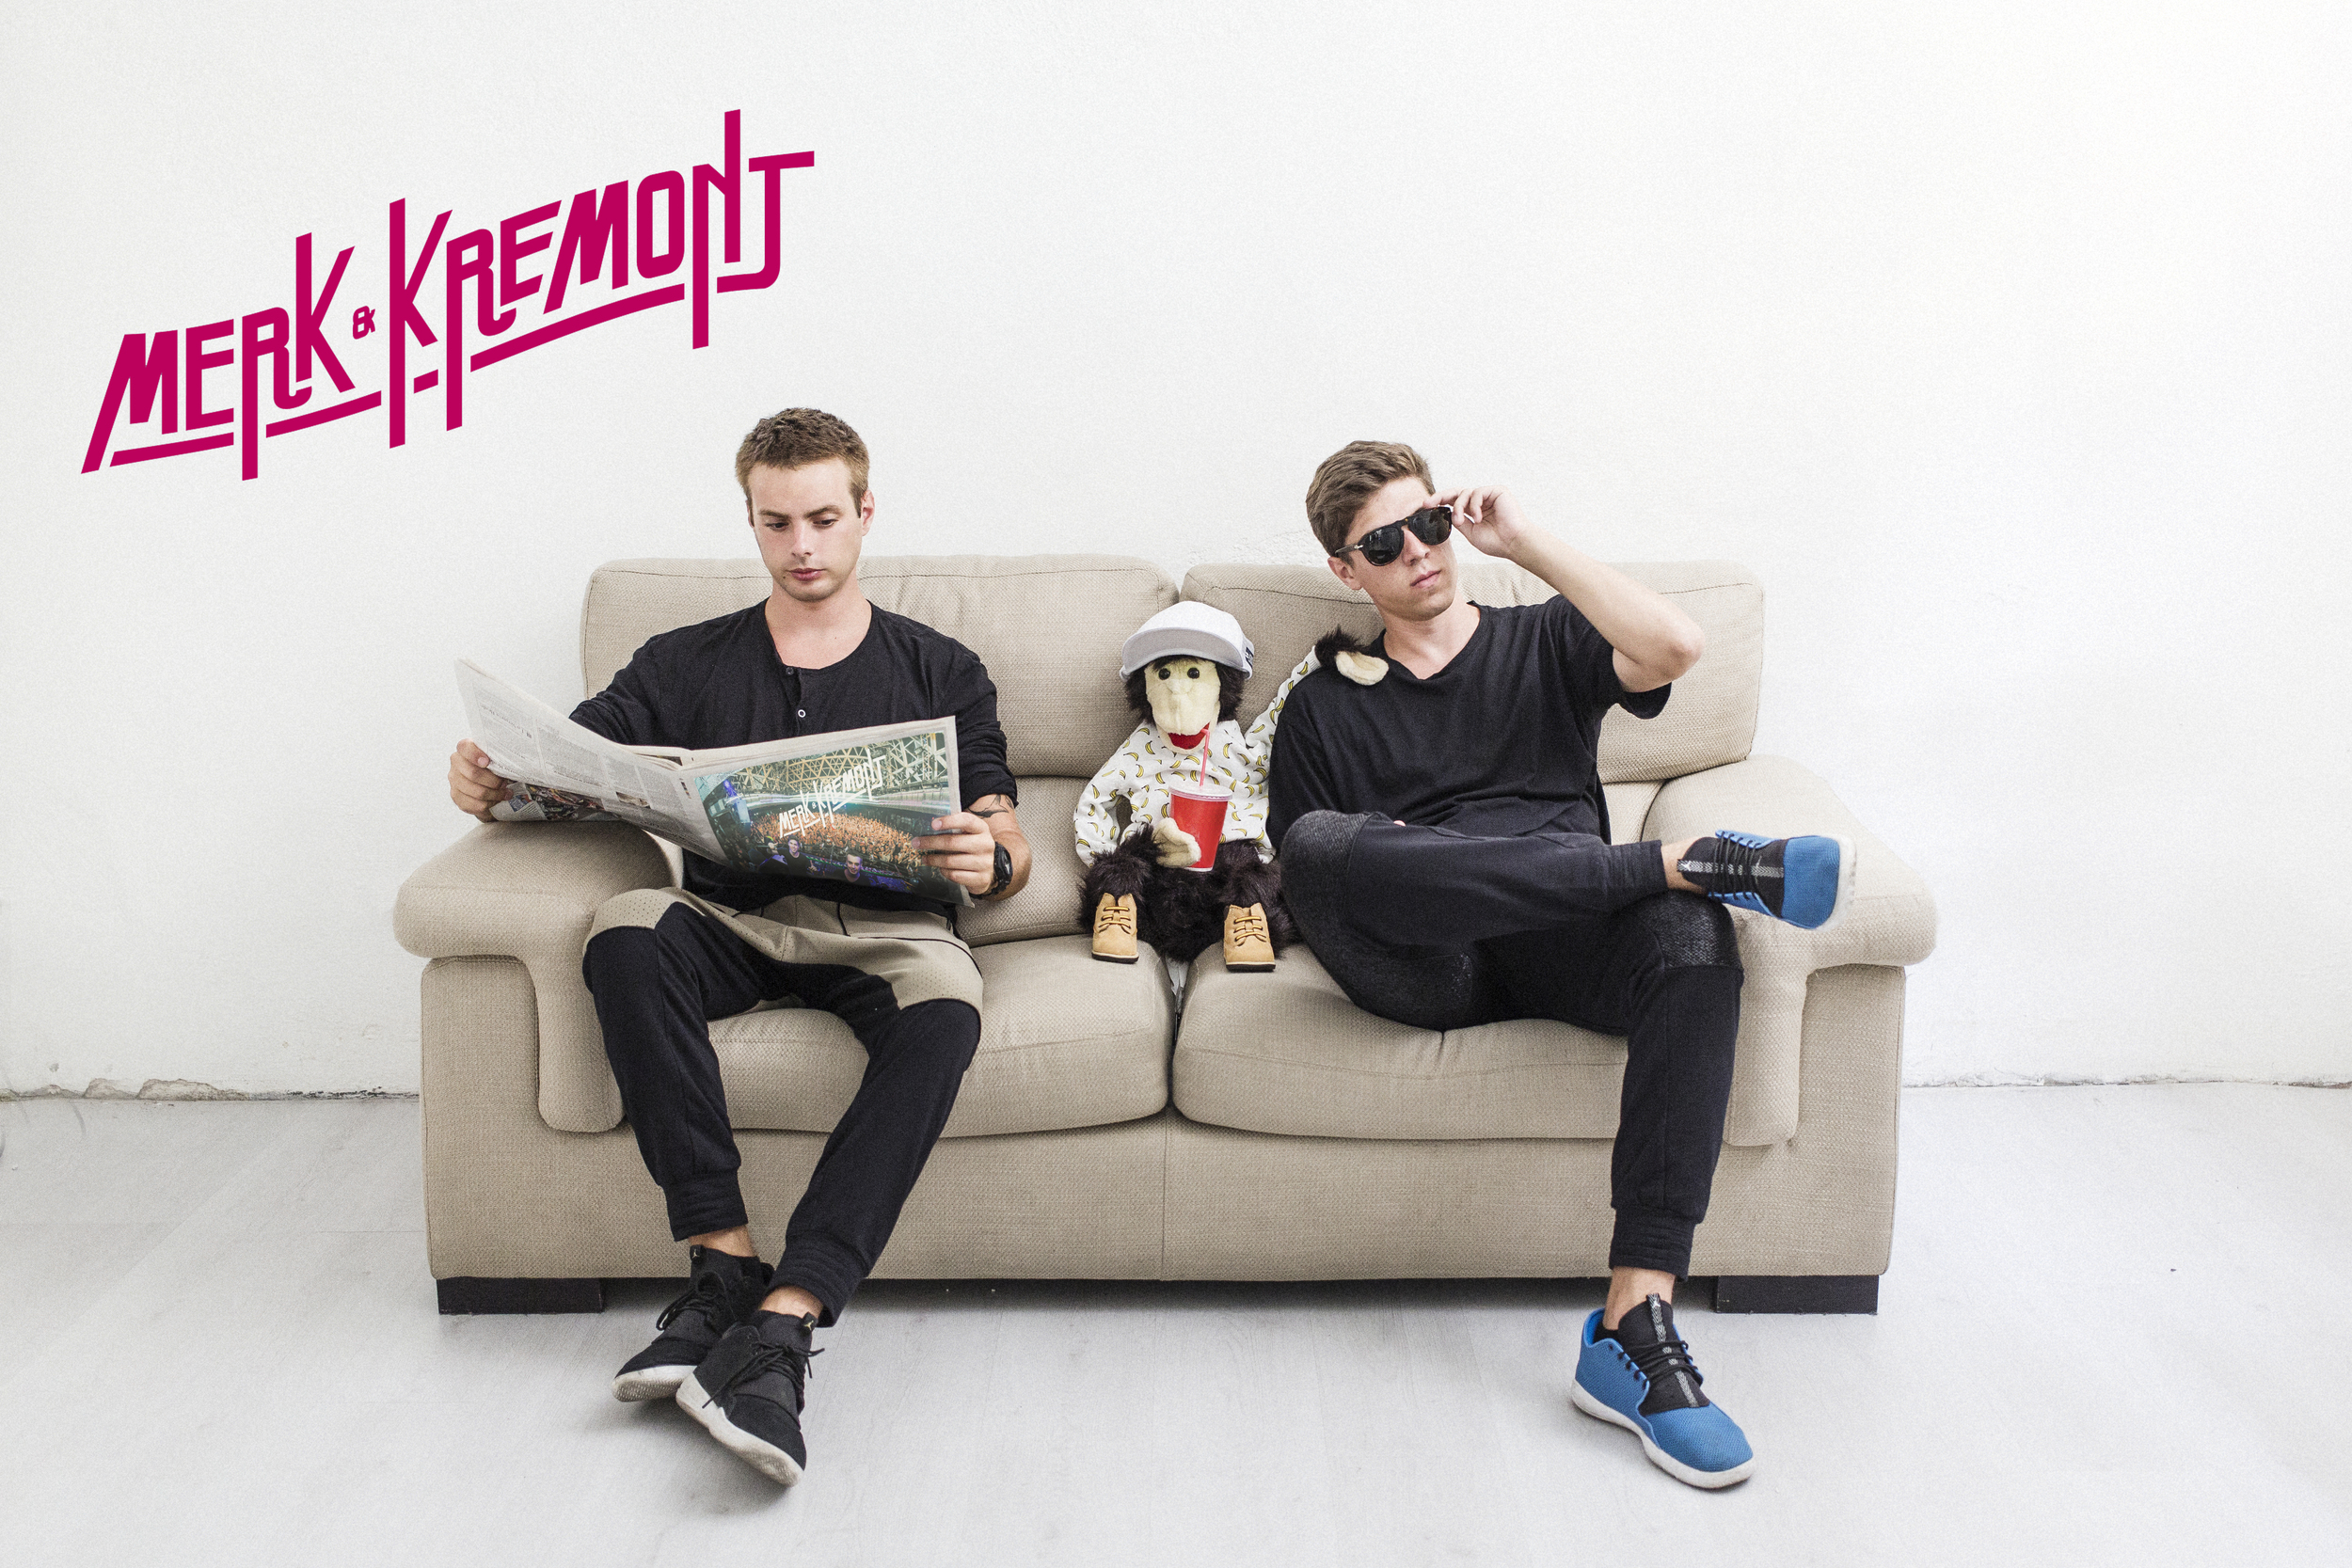 """Merk & Kremont (Fede and Joe) first met in Fede's basement in their home town of Milan. They started talking music, soon realizing they had the same vision, and started working together on a series of bootlegs all the way to their first successful original production, Tundra, in 2013. The Italian duo's musical influences range from Daft Punk to Fedde Le Grand, and the great House classics – and although Joe started out producing Hip-Hop beats whilst Fede was more into Pop–they found the perfect combination of ingredients to develop what is now recognized as their unique sound. A sound that has been described as """"grinding 'n' groovy"""".  Merk & Kremont have received support from huge acts such as Avicii Steve Angello, Hardwell, Nicky Romero, Benny Benassi and many more. They've been unleashing massive club hits for almost two years now and they still have plenty of ammo to shoot for the future. Their tracks have featured on labels like Flamingo, Protocol, Size, Premiere, Revealed, Ultra and Spinnin' and their remix of """"Rather Be"""" by Clean Bandit reached 1M downloads on Soundcloud, played by hundreds of djs all over the world. They have been taking their unique grindingly groovy sets all over Europe, Asia and North America and have played, among others, Pacha (Ibiza), LIV (Miami), Drai's (Las Vegas).   Their latest hit 'Get Get Down' is something of a viral phenomenon thanks also to its insanely entertaining video and its their first track to enter the Beatport chart in the top 10. The sky is the limit for Merk & Kremont and they're climbing the dance ladder one sick beat at a time."""